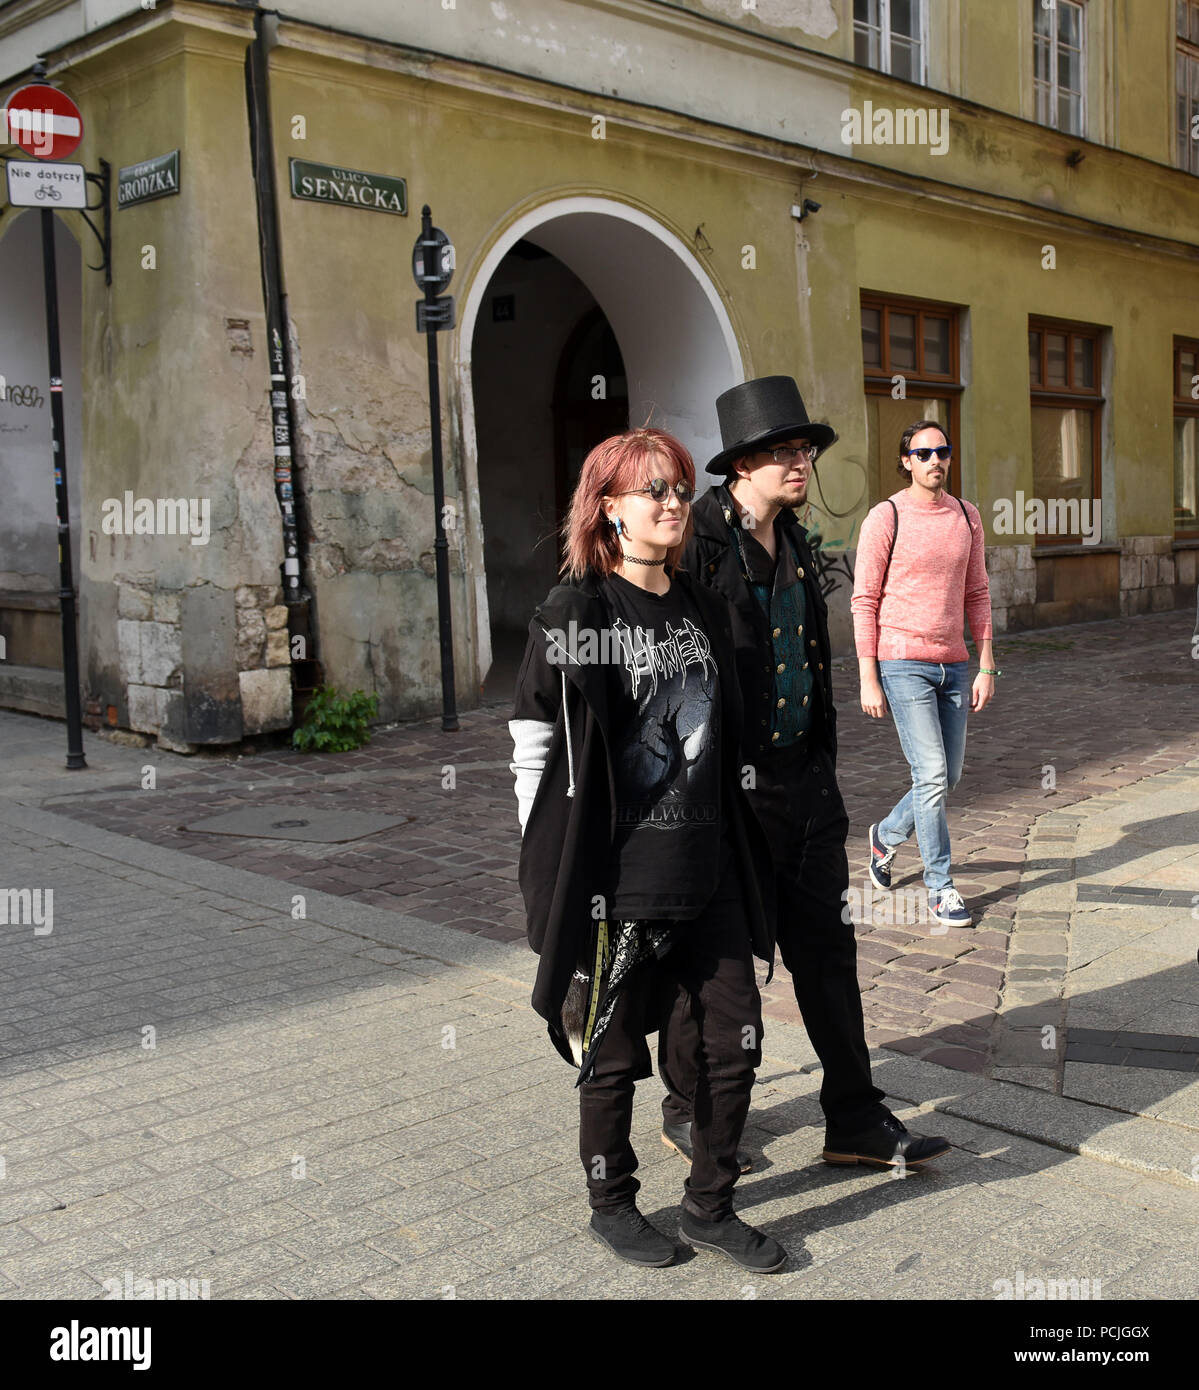 Young couple dressed in flamboyant clothes Krakow Poland 2018 - Stock Image